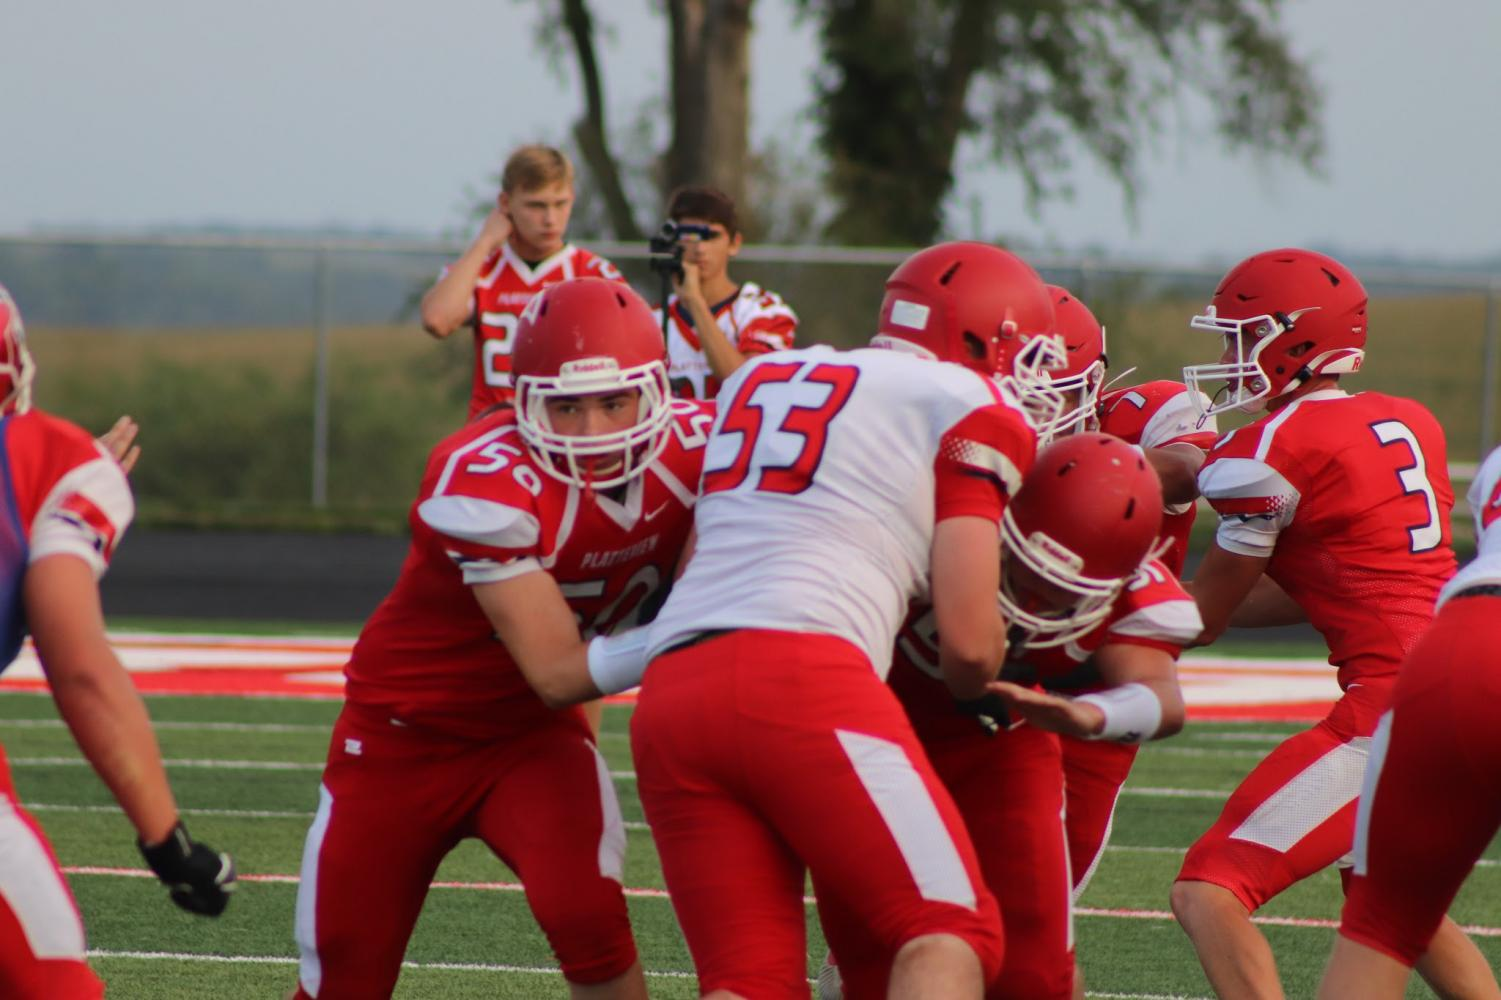 Senior Cade Demro hands the ball off to fellow senior Tobius Nixon on Friday, August 23 for the Red & White scrimmage on Salberg Field while seniors Grant Mitchell and Byron Ehrke block junior Brennan Campbell. In the back, freshmen Ethan Golda and Bryar Nadrchal take video for the football team to scrutinize after the game.